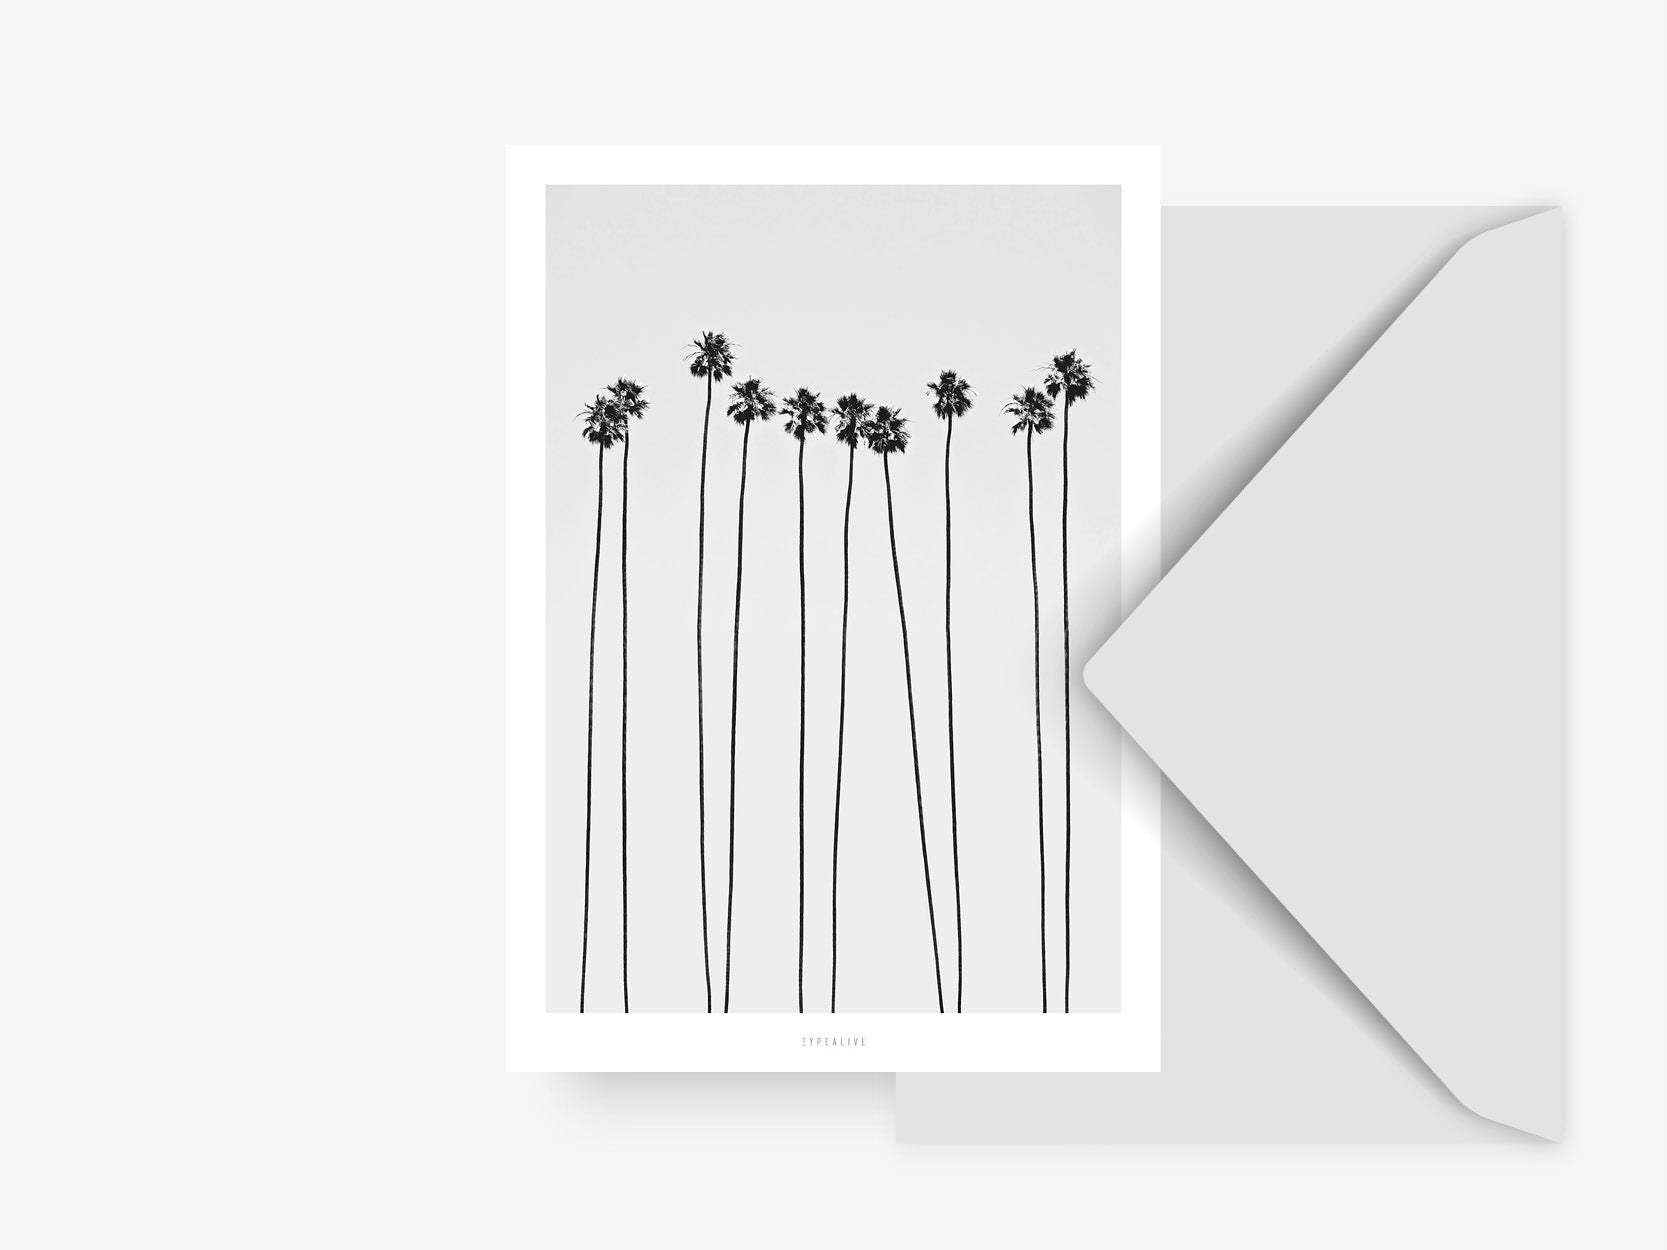 Postkarte / All About Palms No. 5